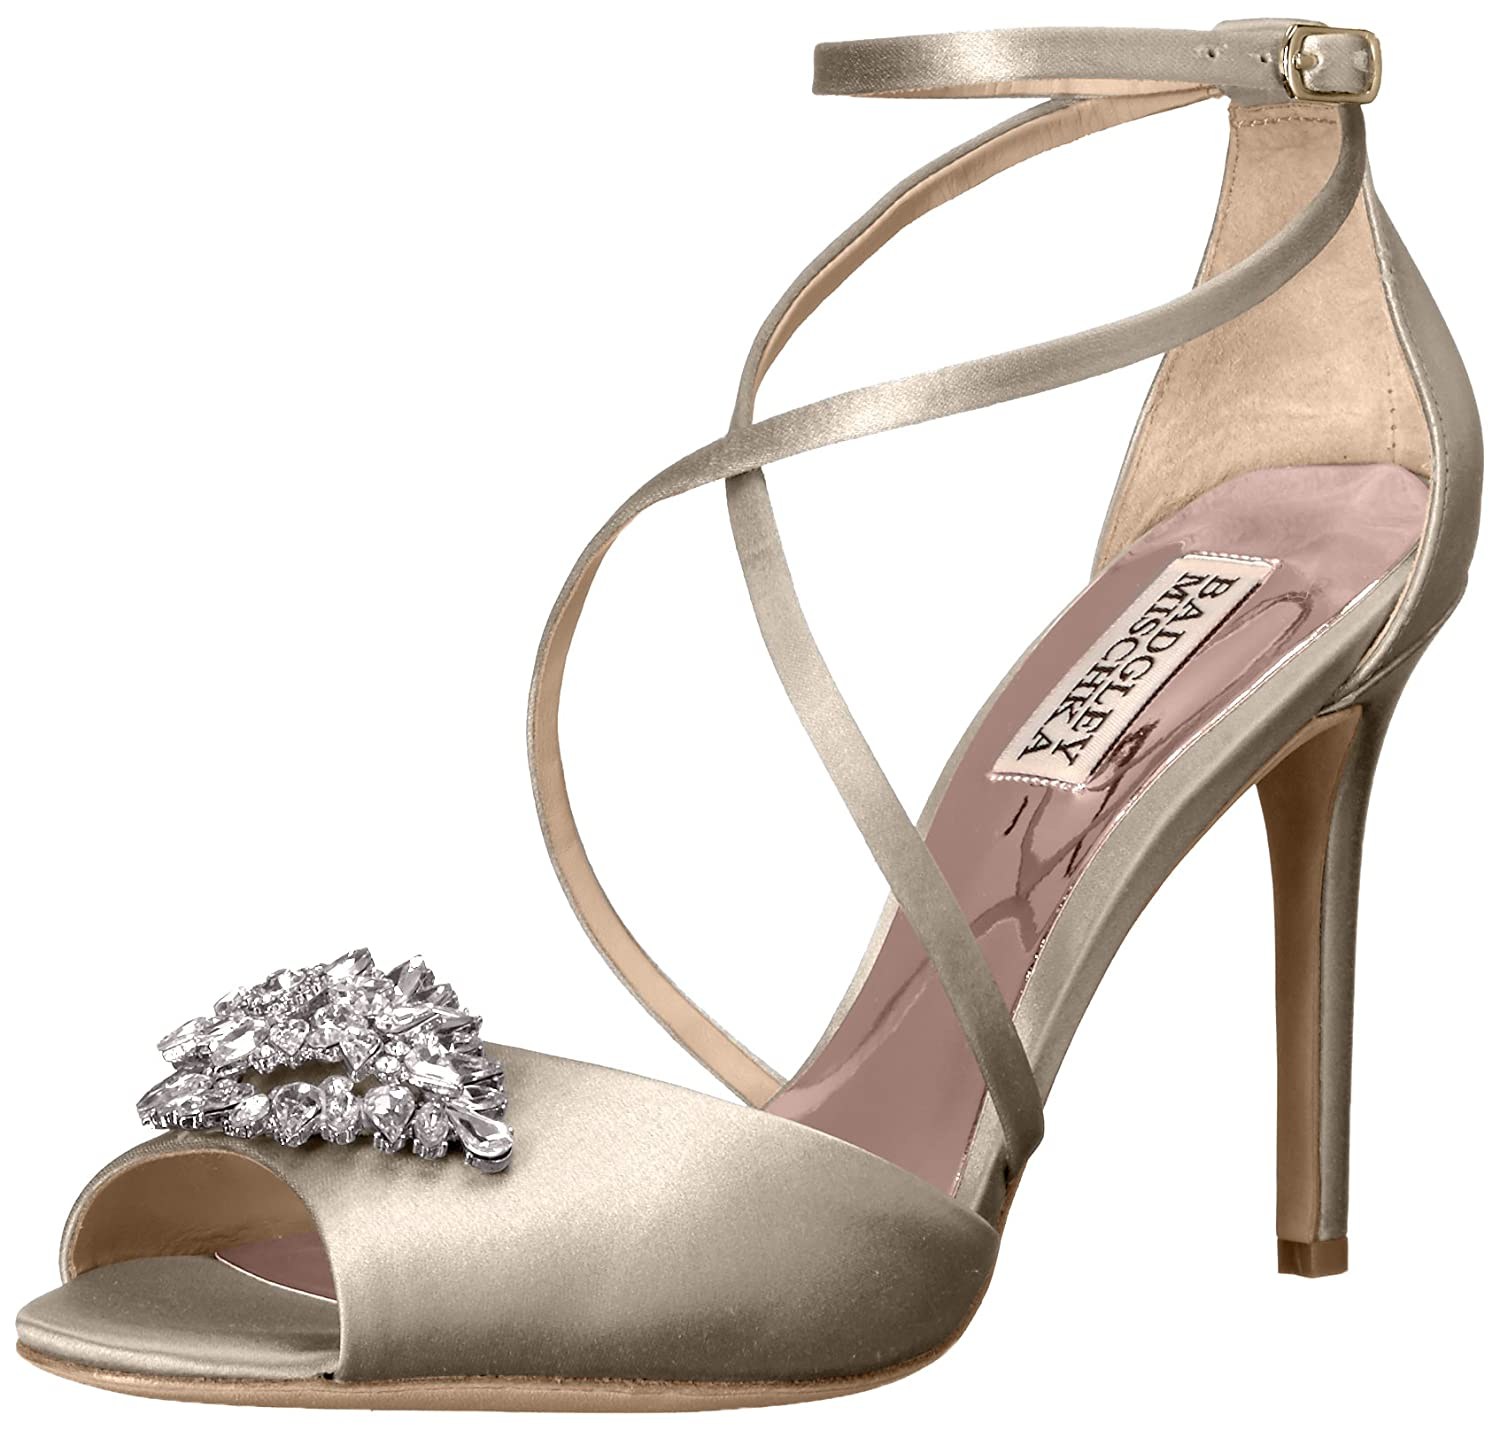 Ivory Badgley Mischka Womens Tatum Dress Sandal